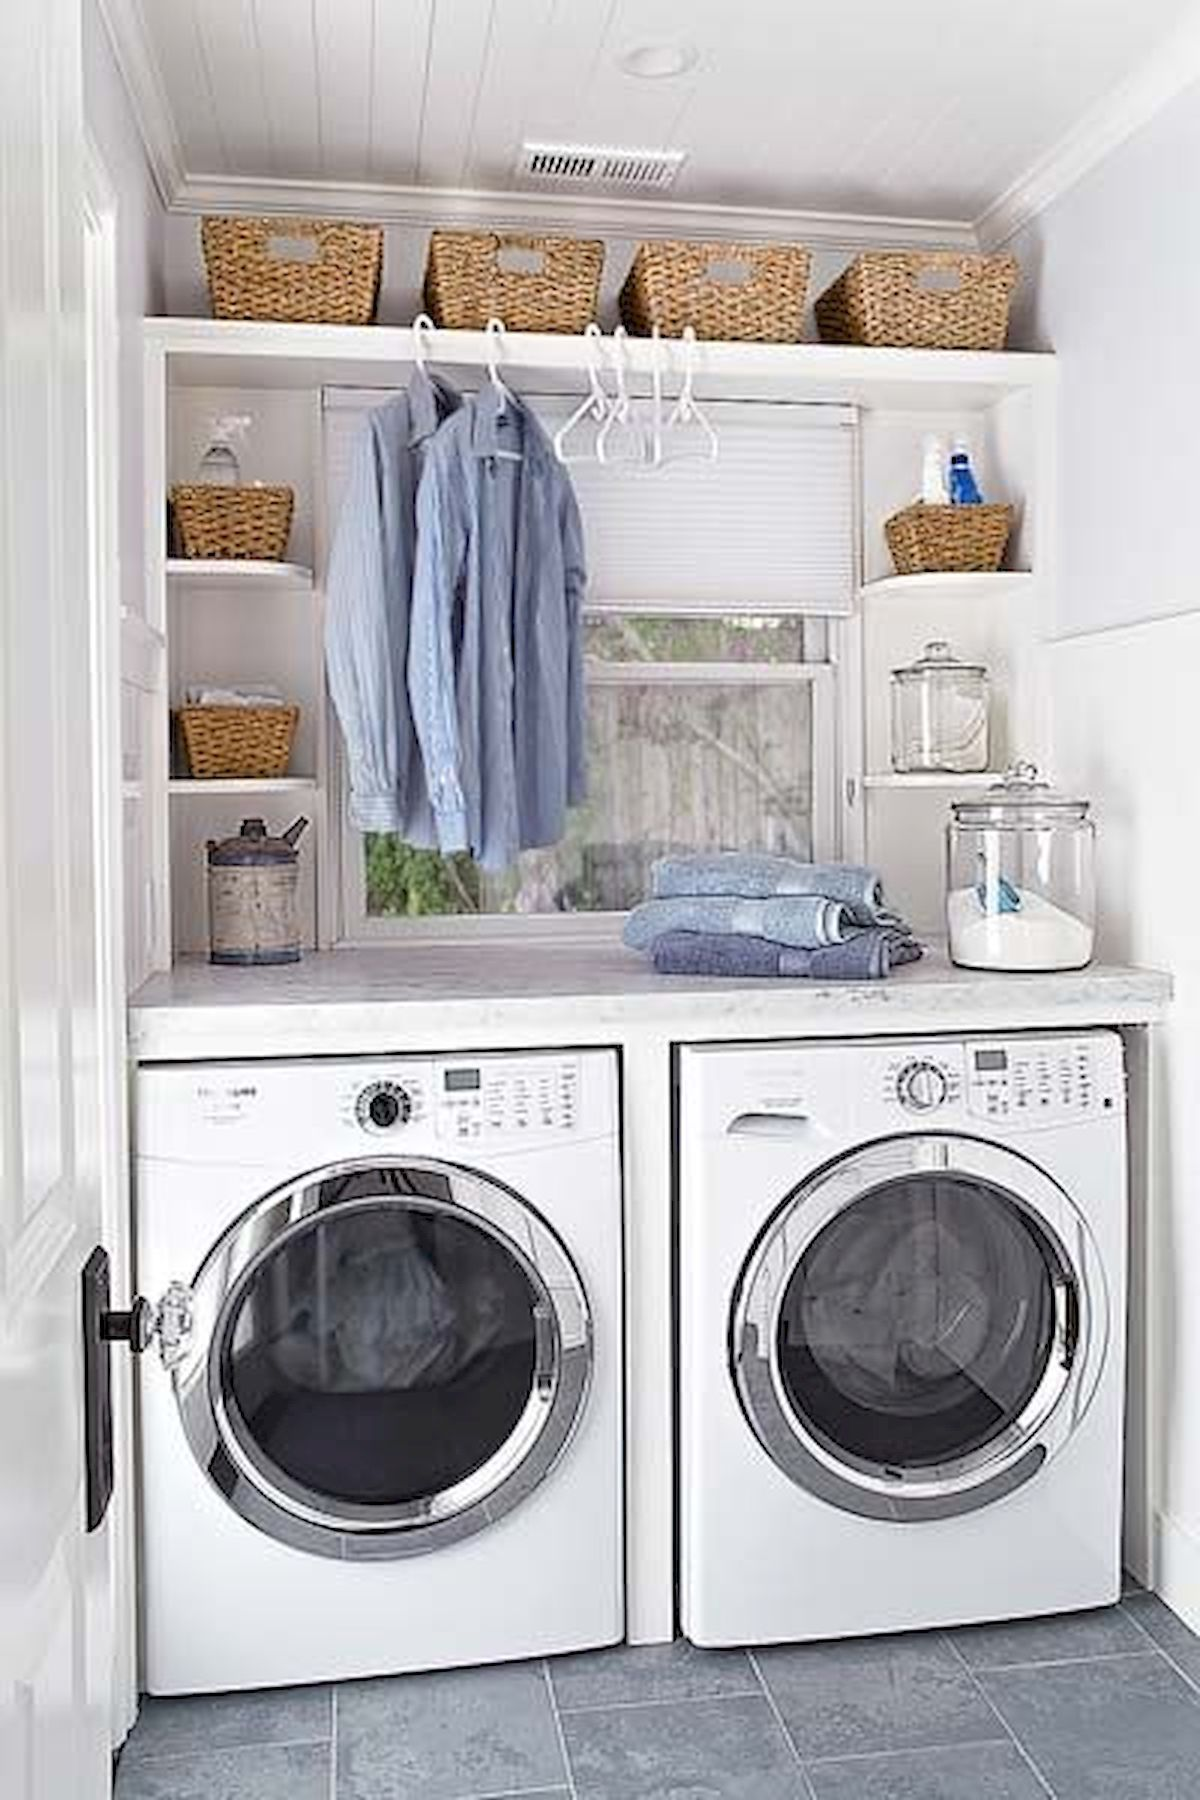 75 Awesome Laundry Room Storage Decor Ideas (25 images